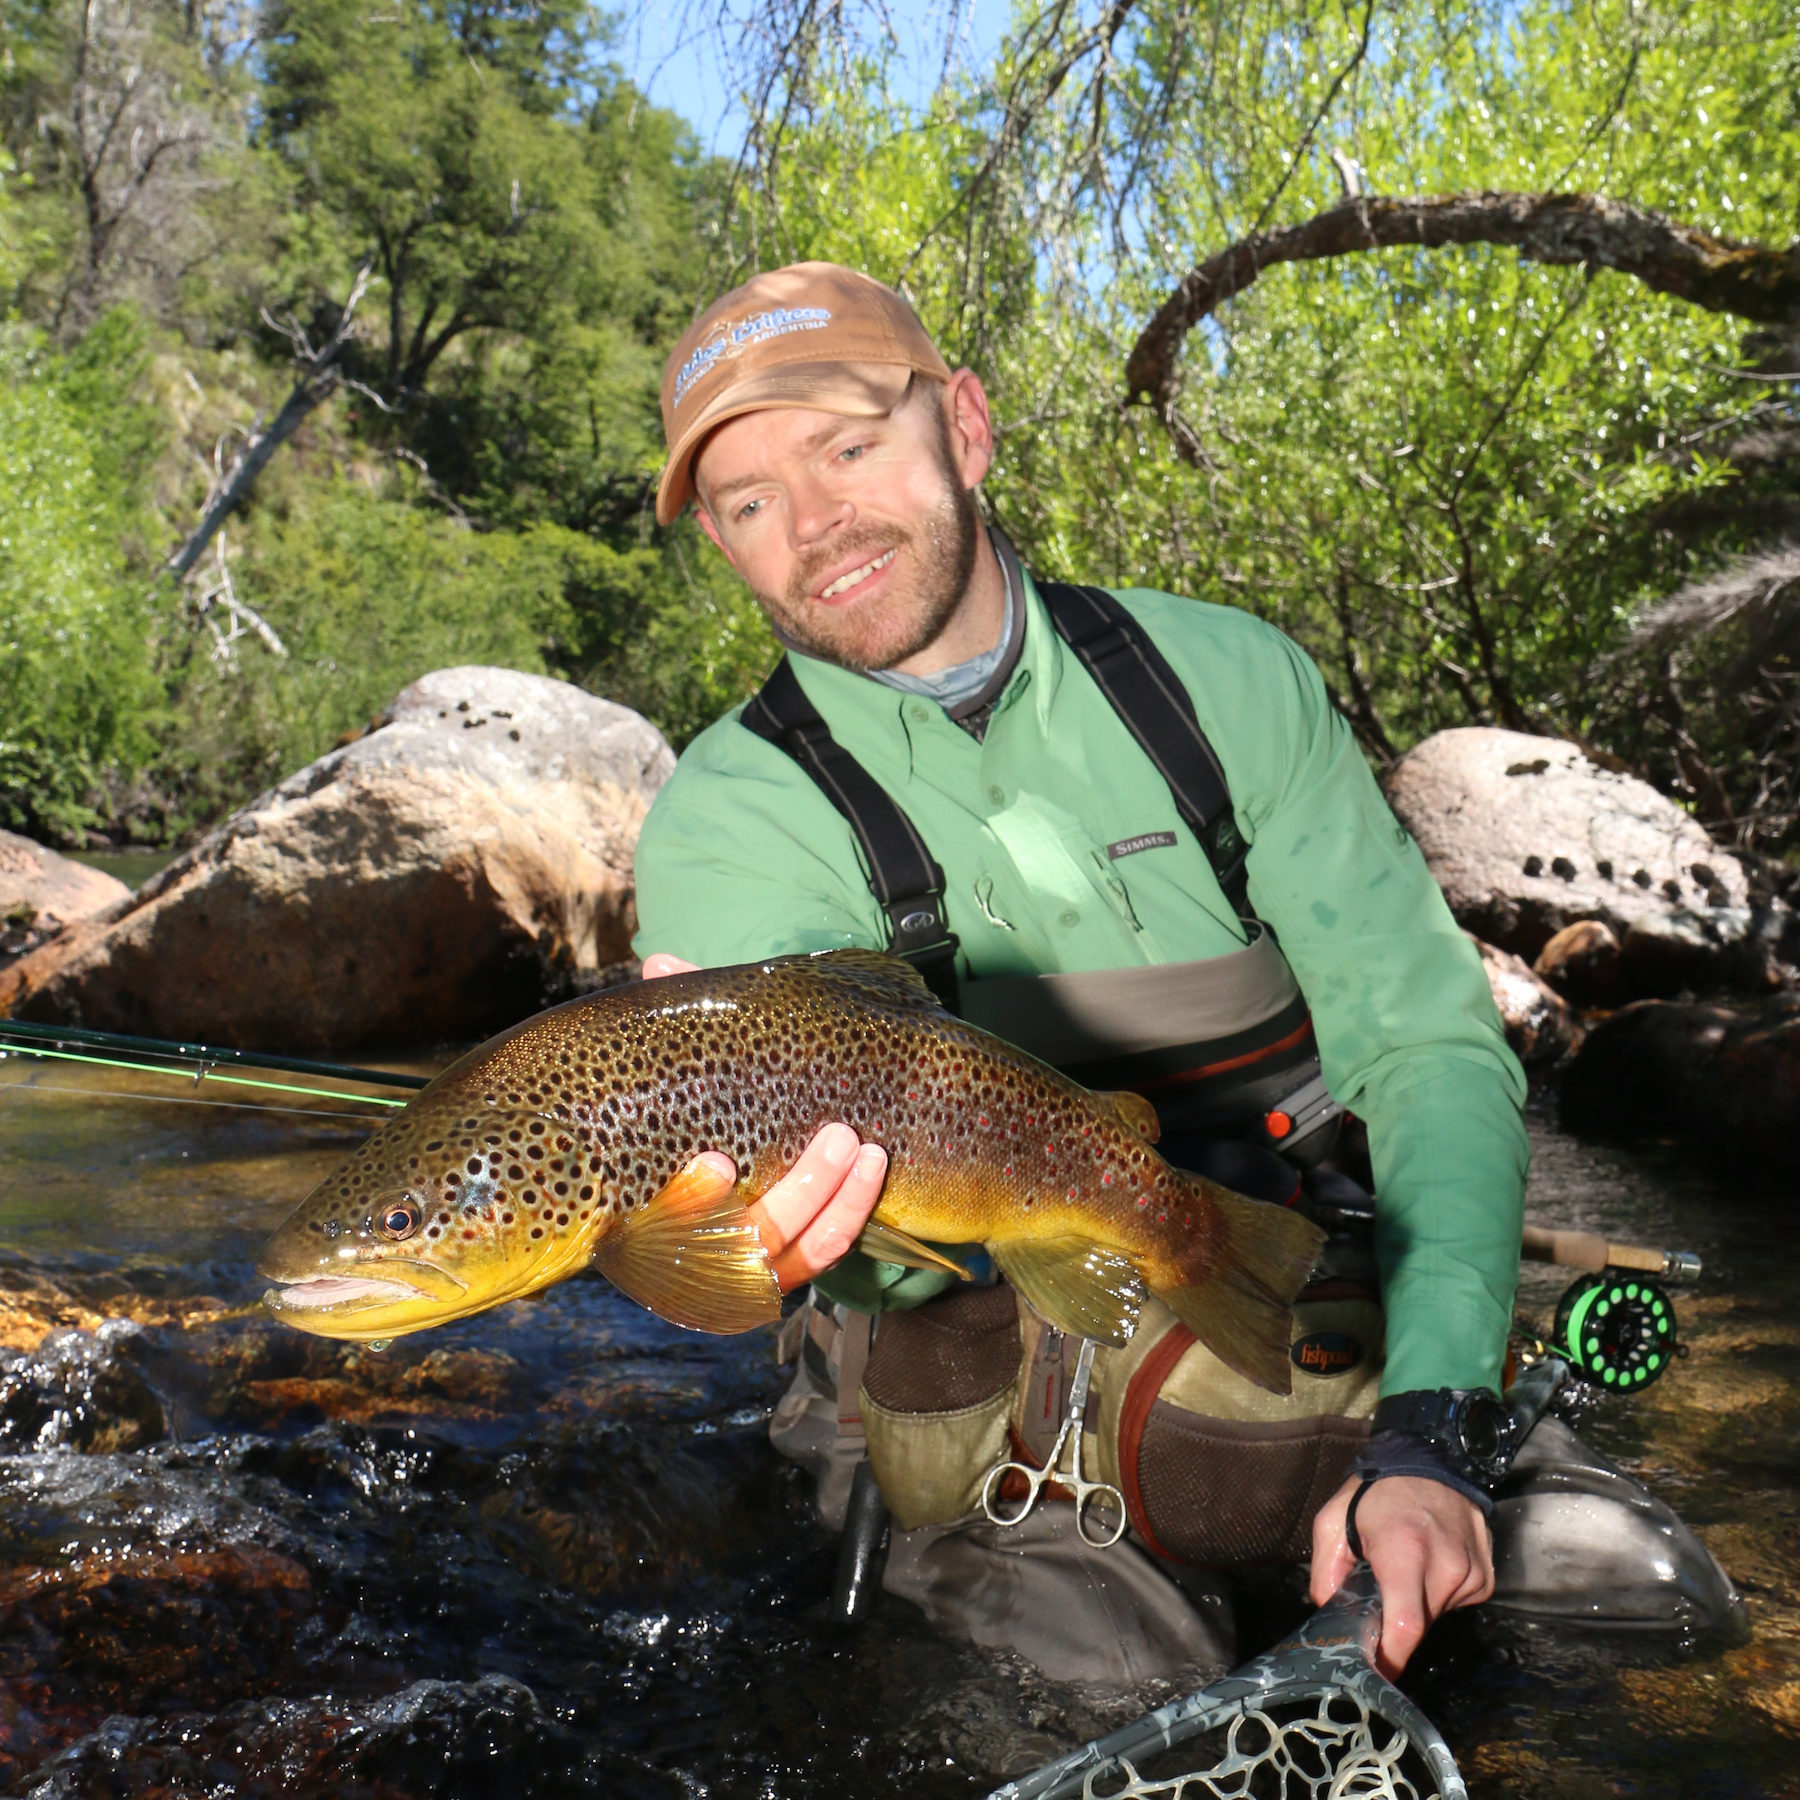 Register NOW for Landon Mayer Fly-Tying Class on March 1